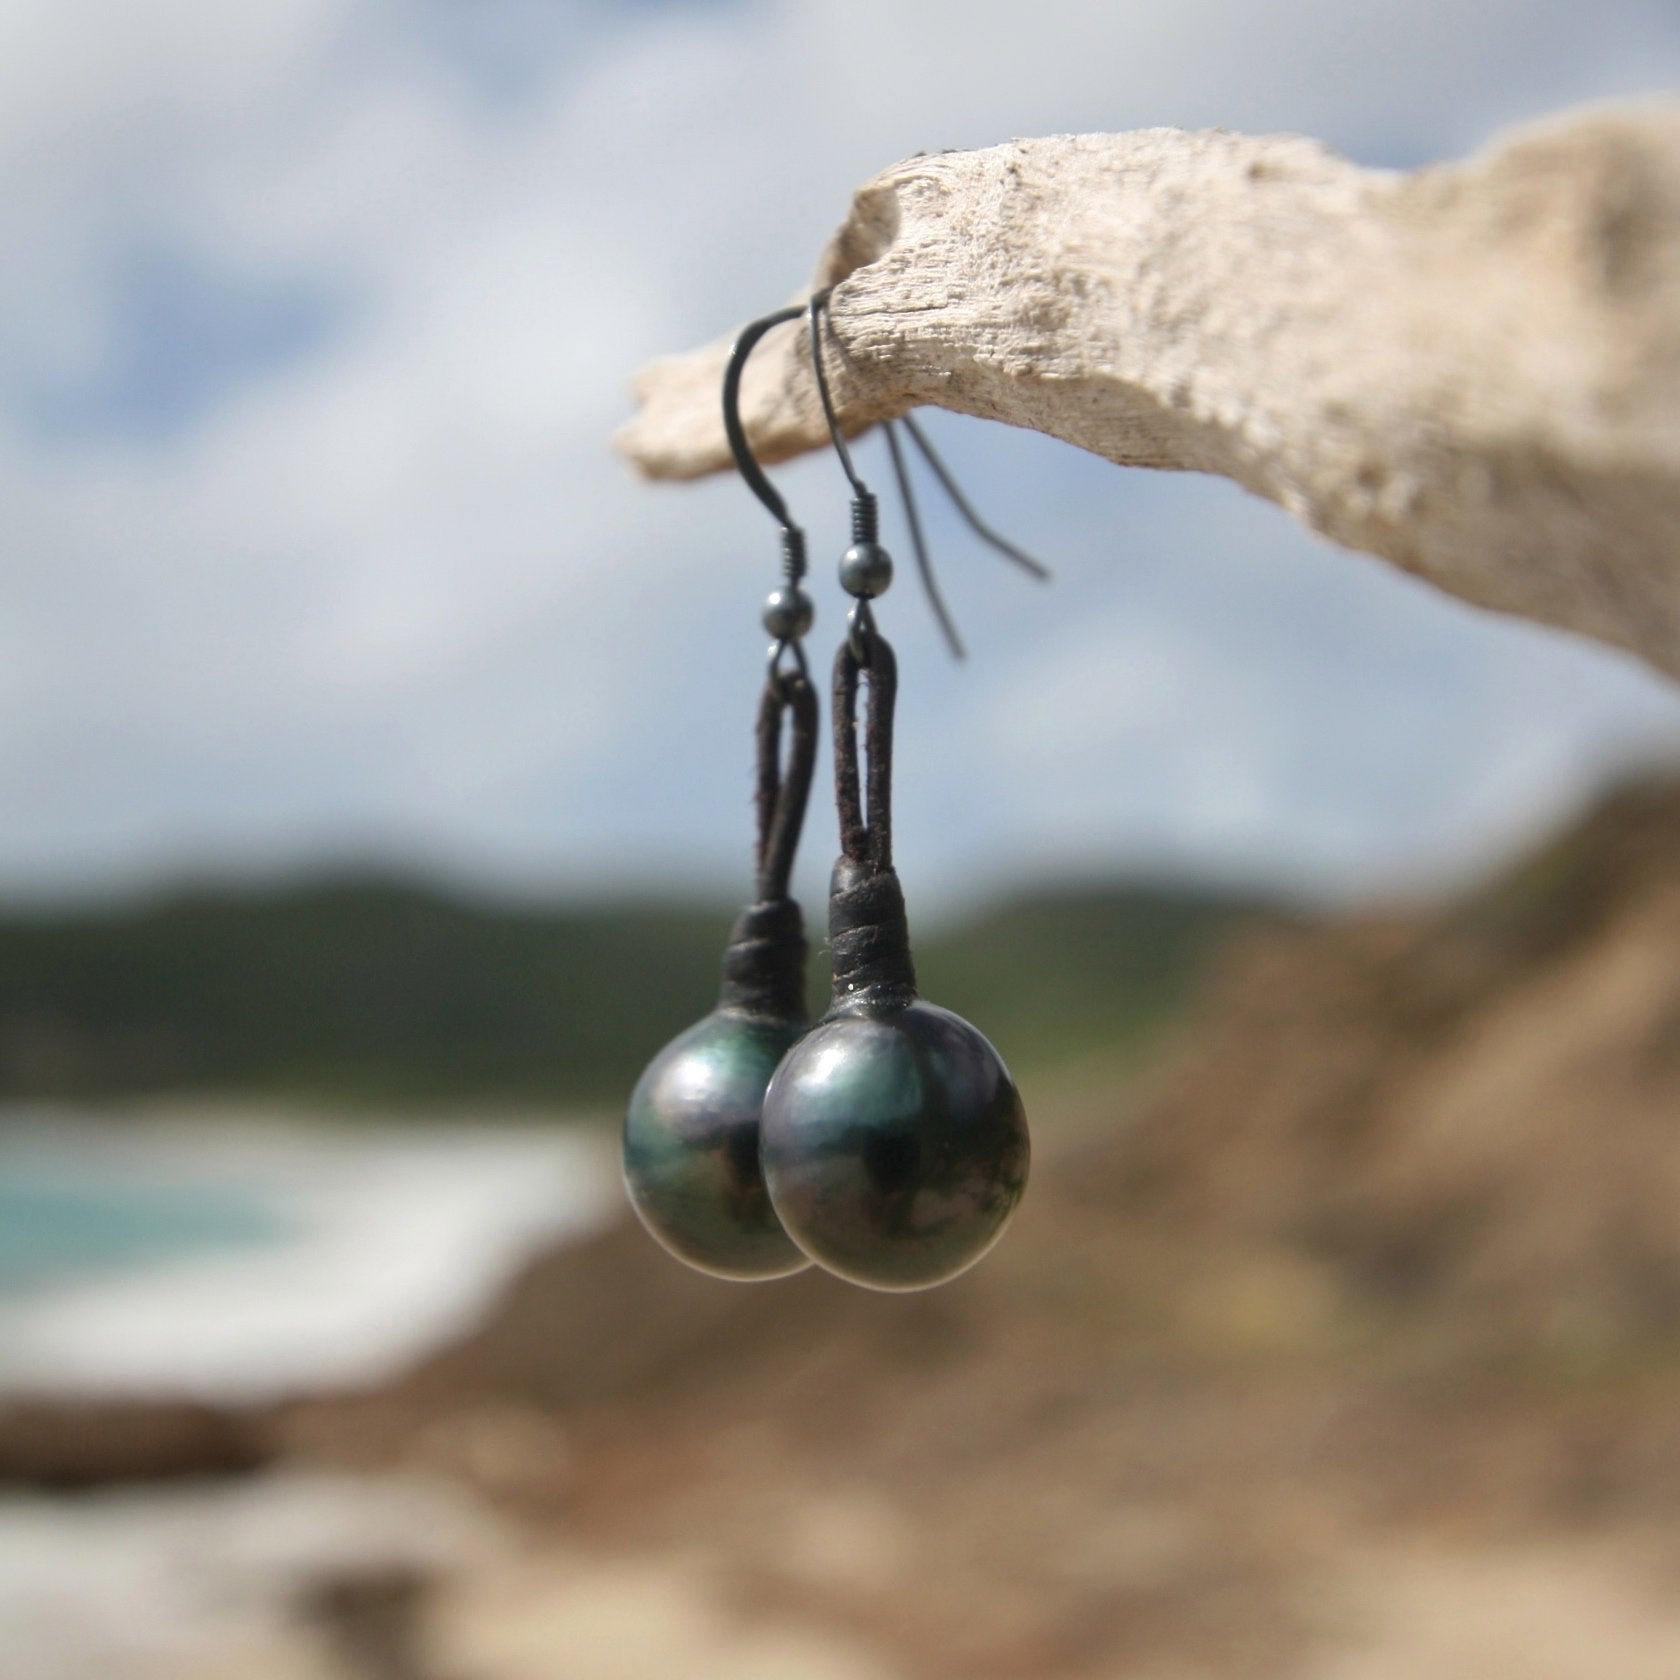 Black tahitian pearls earings on leather beach jewelery boho leather design endless summer st barts, cultured black pearls, bohemian.